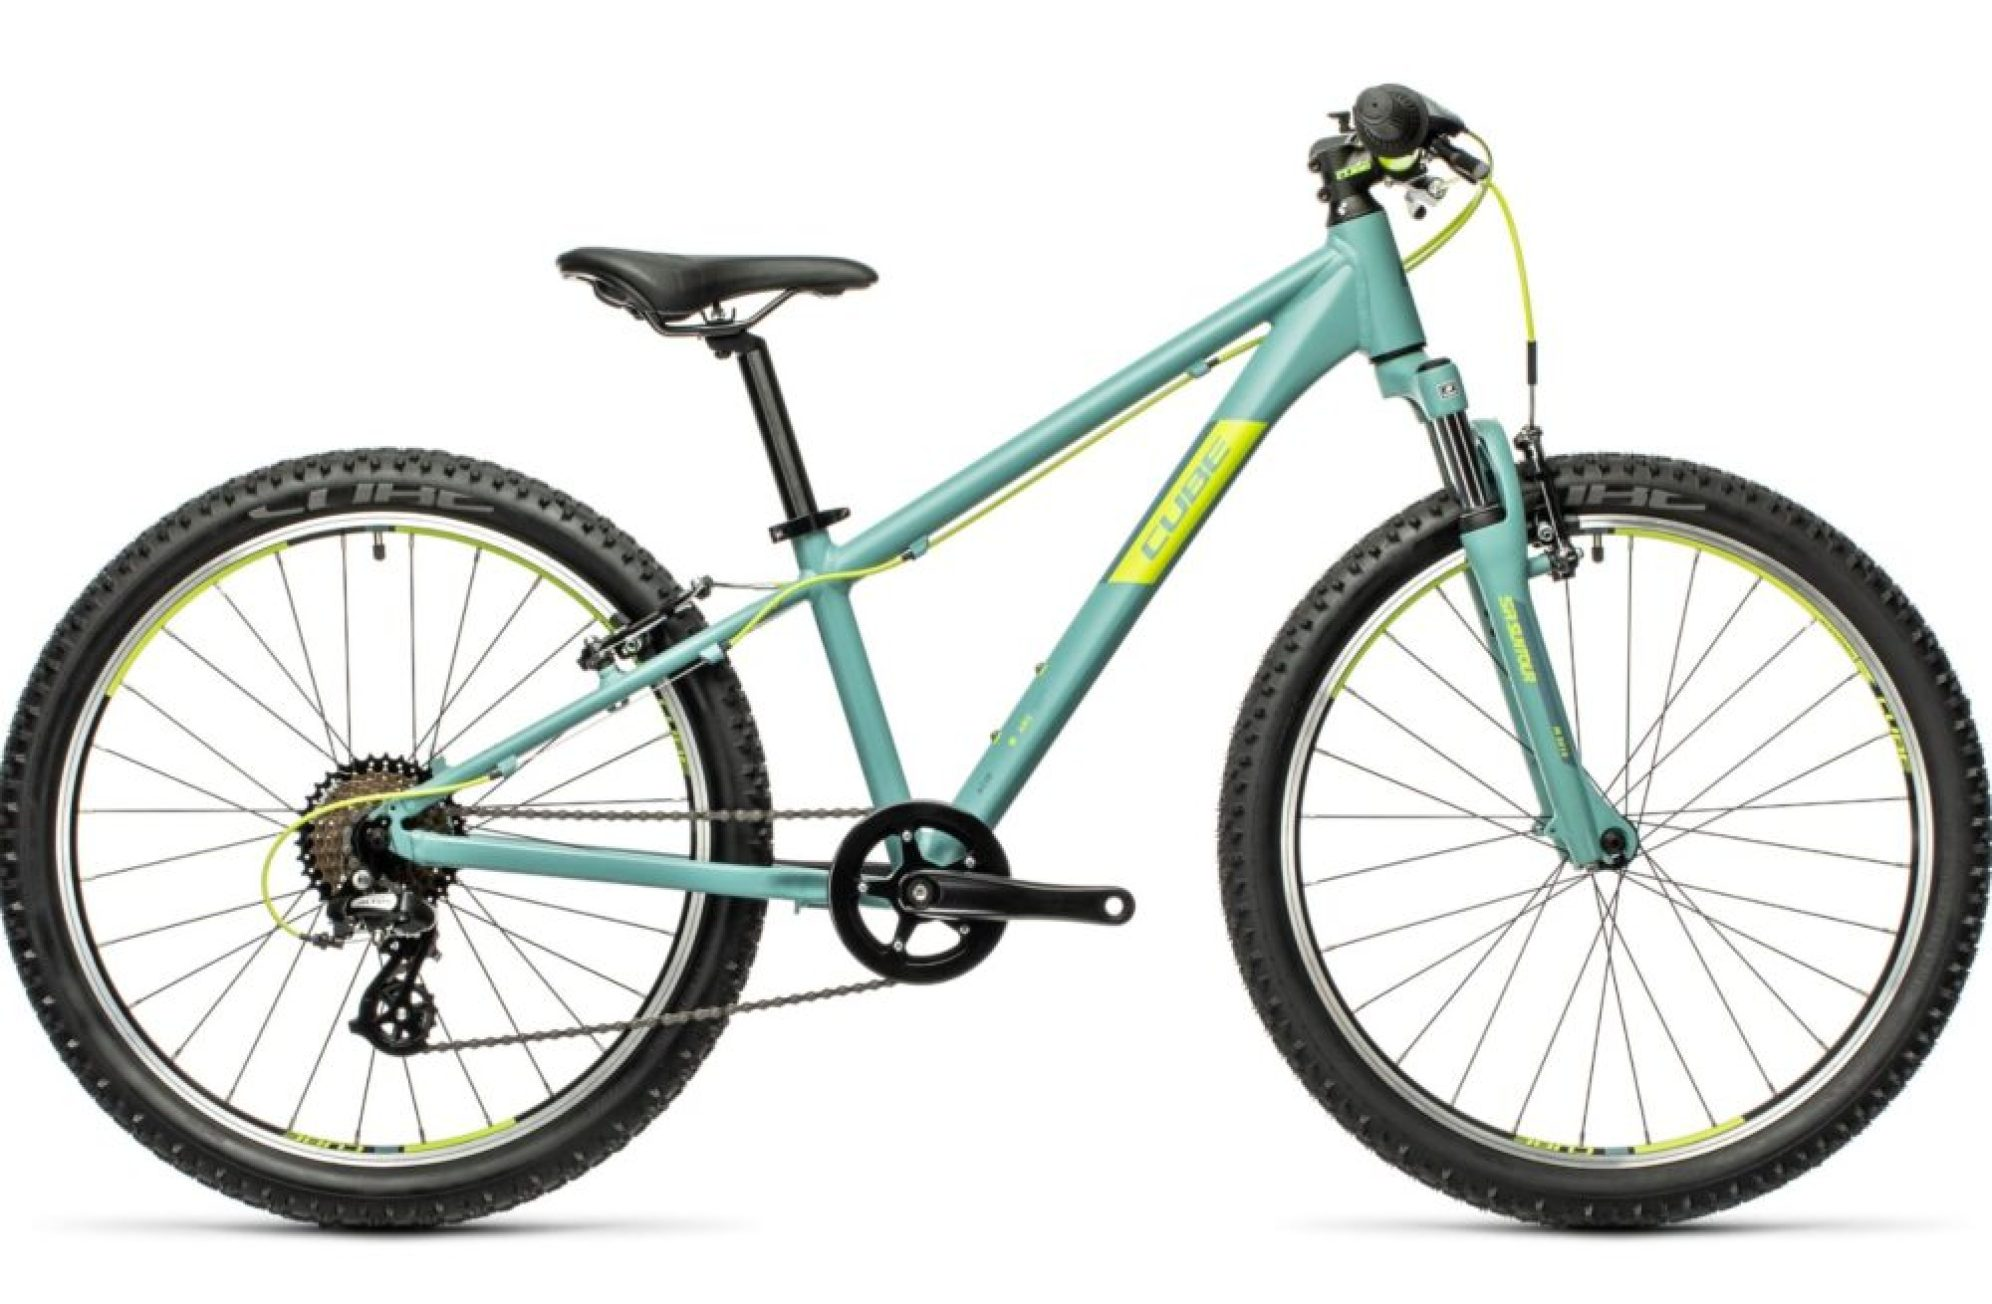 Cube Acid 240 2021 - a great entry level kids mountain bike